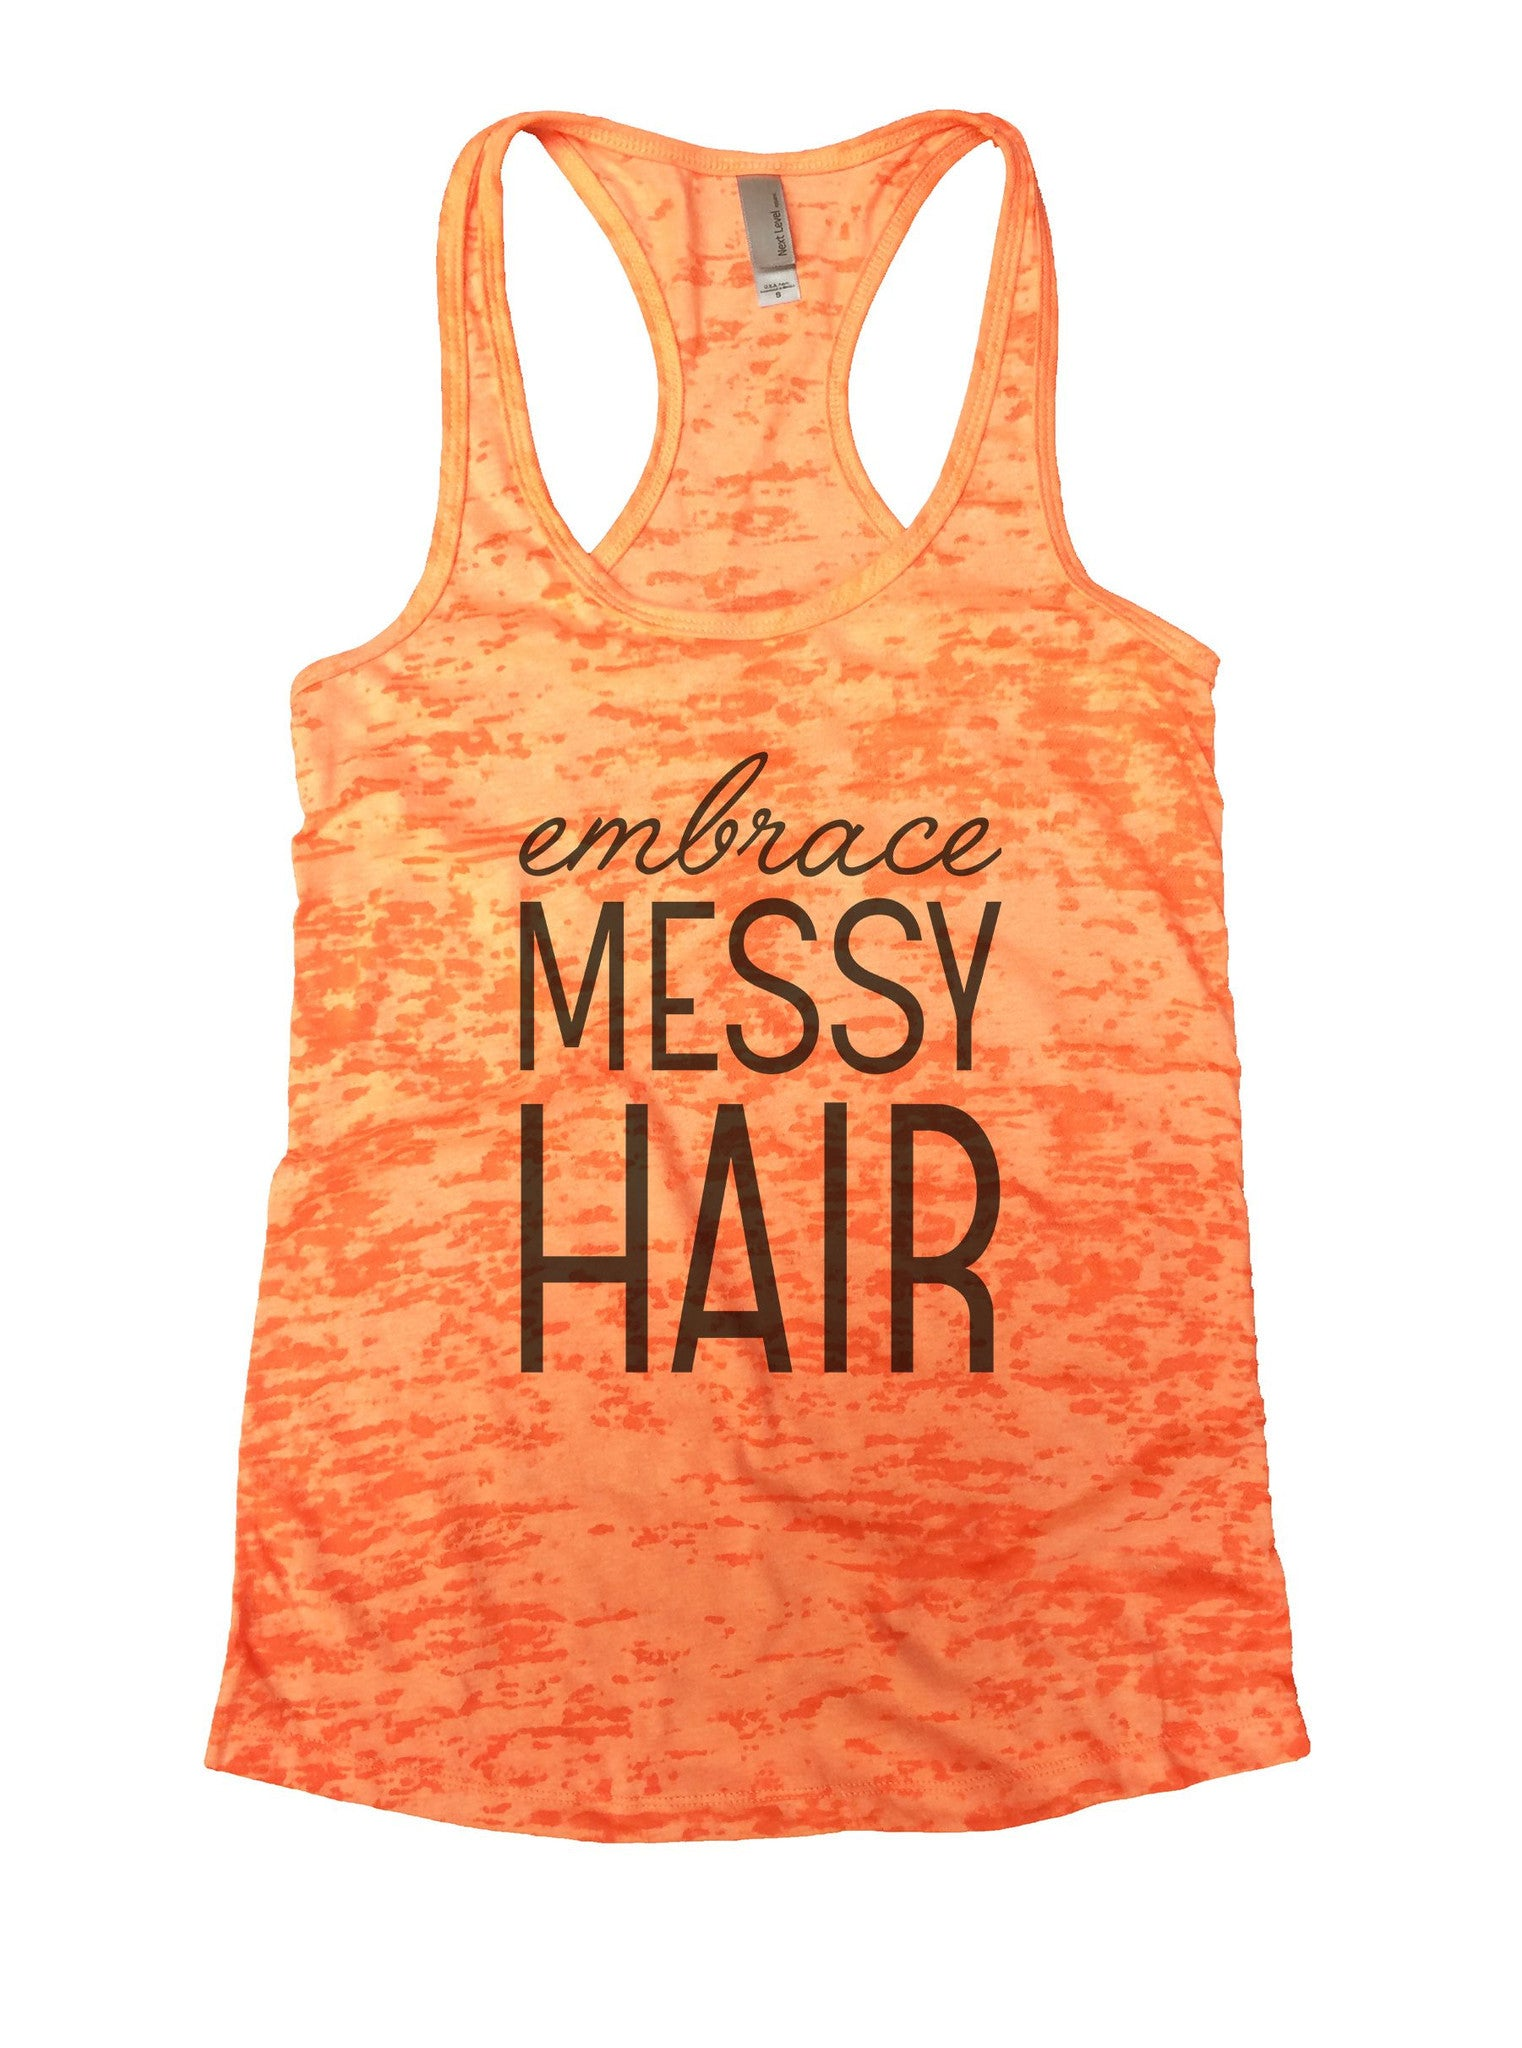 Embrace Messy Hair Burnout Tank Top By BurnoutTankTops.com - 940 - Funny Shirts Tank Tops Burnouts and Triblends  - 3